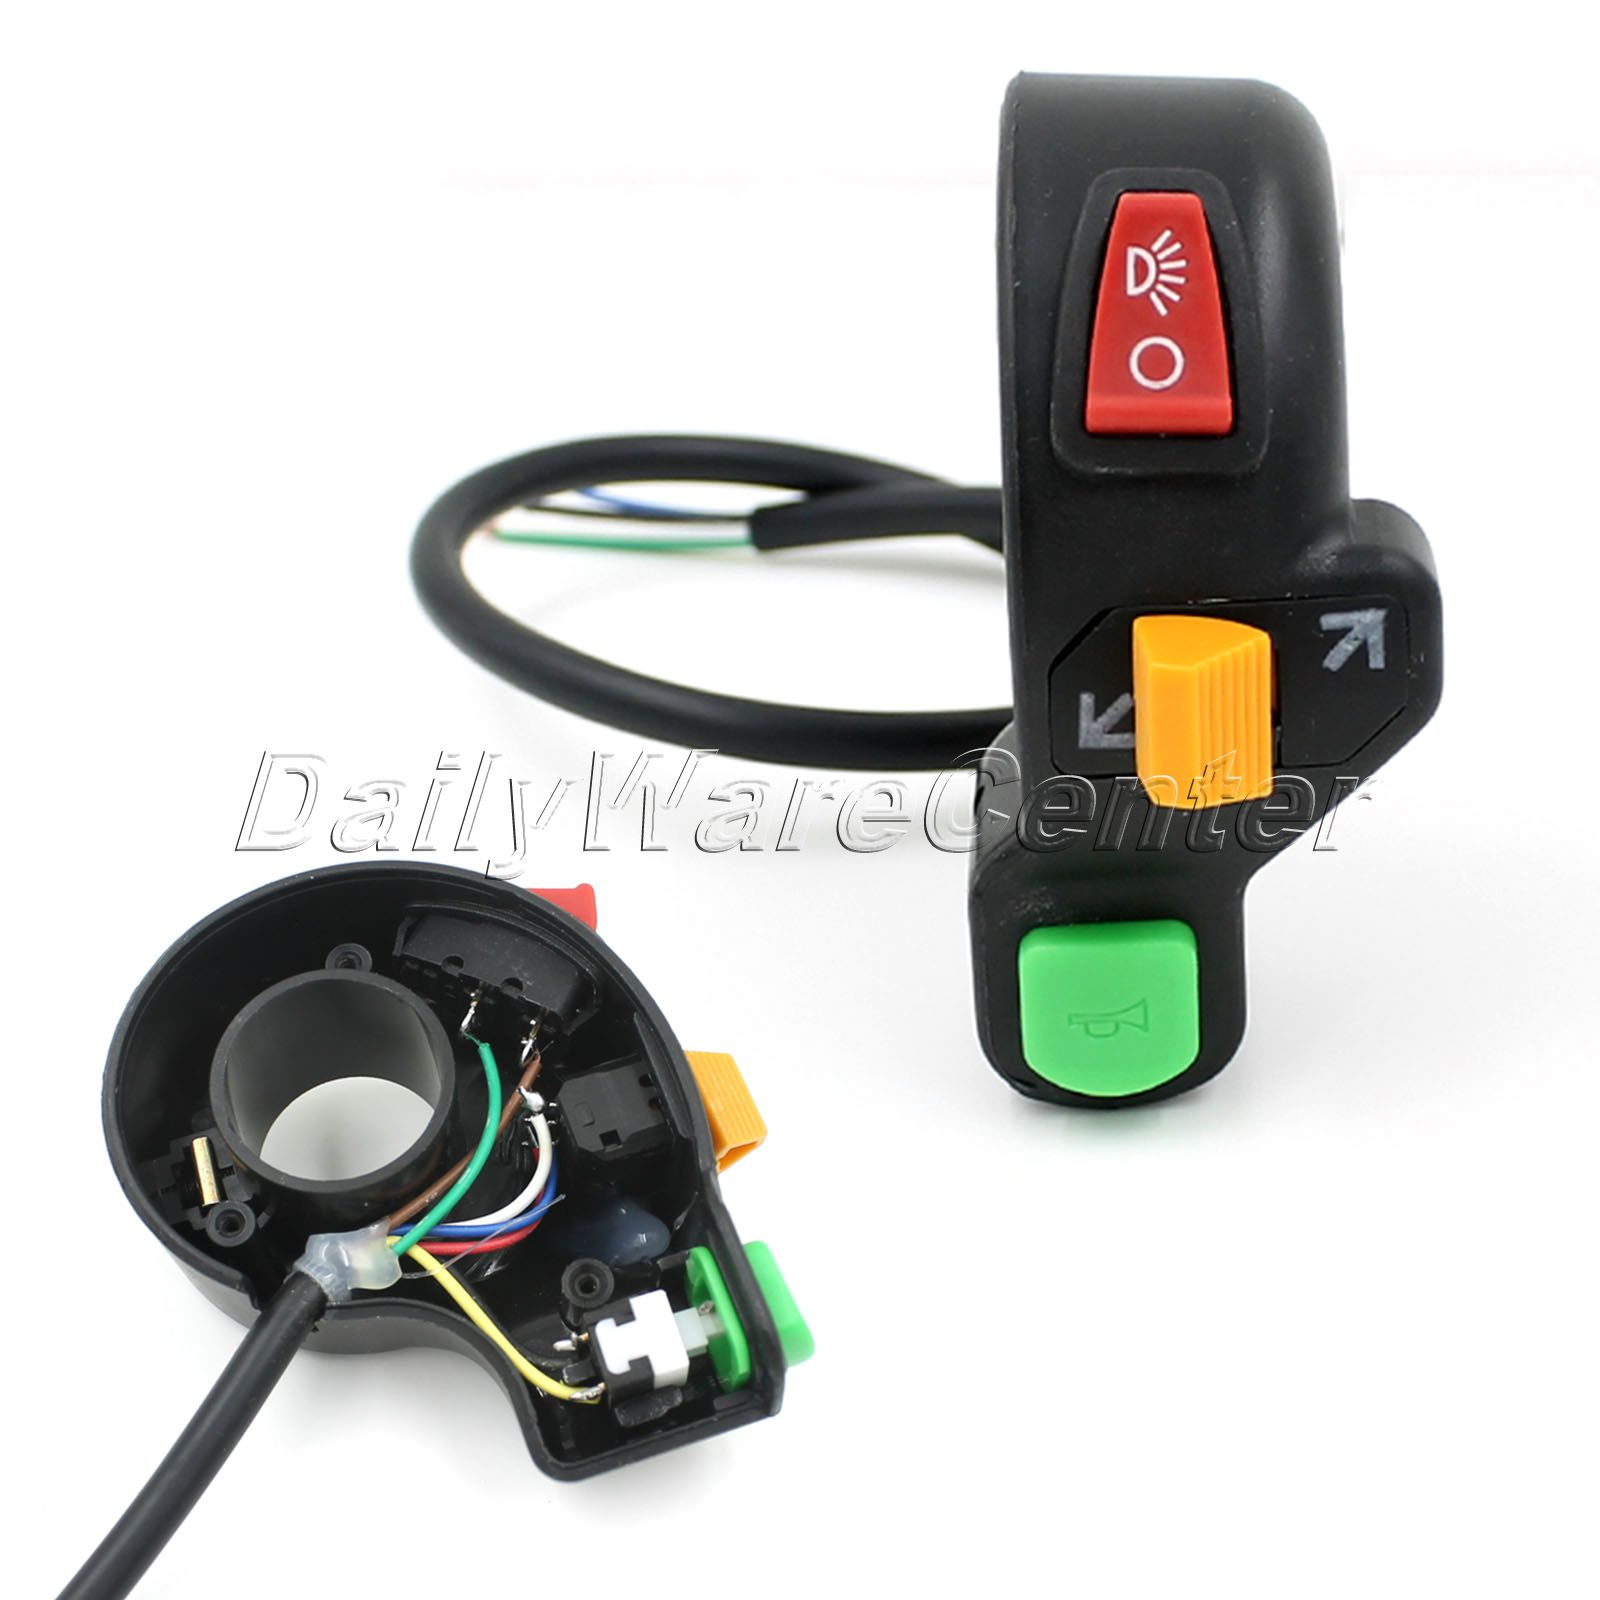 7/8inch Universal Handlebar Switch Motorcycle Scooter Dirt ATV Quad Handle Horn Switch Headlight Turn Signal Light On/Off Switch